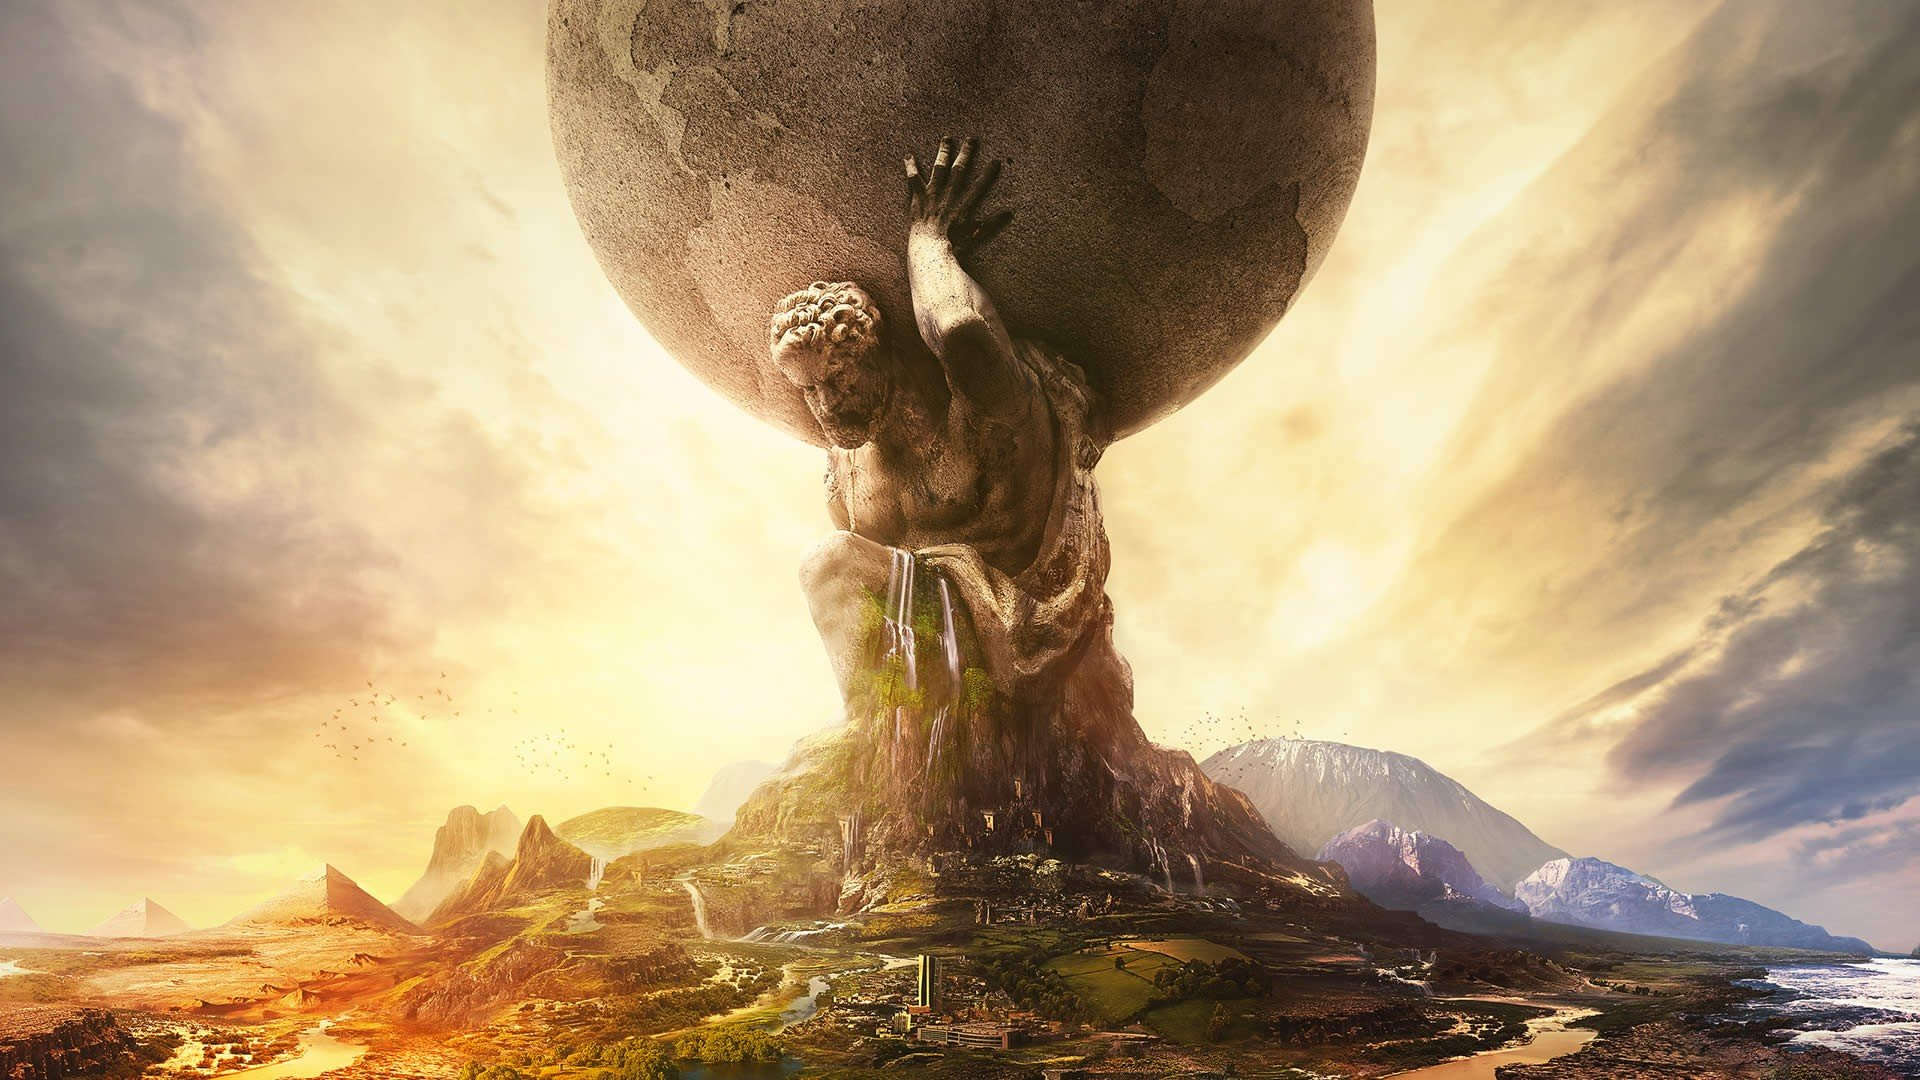 Civilization Video Game Wallpapers 1920x1080 Full Hd 1080p Desktop Backgrounds